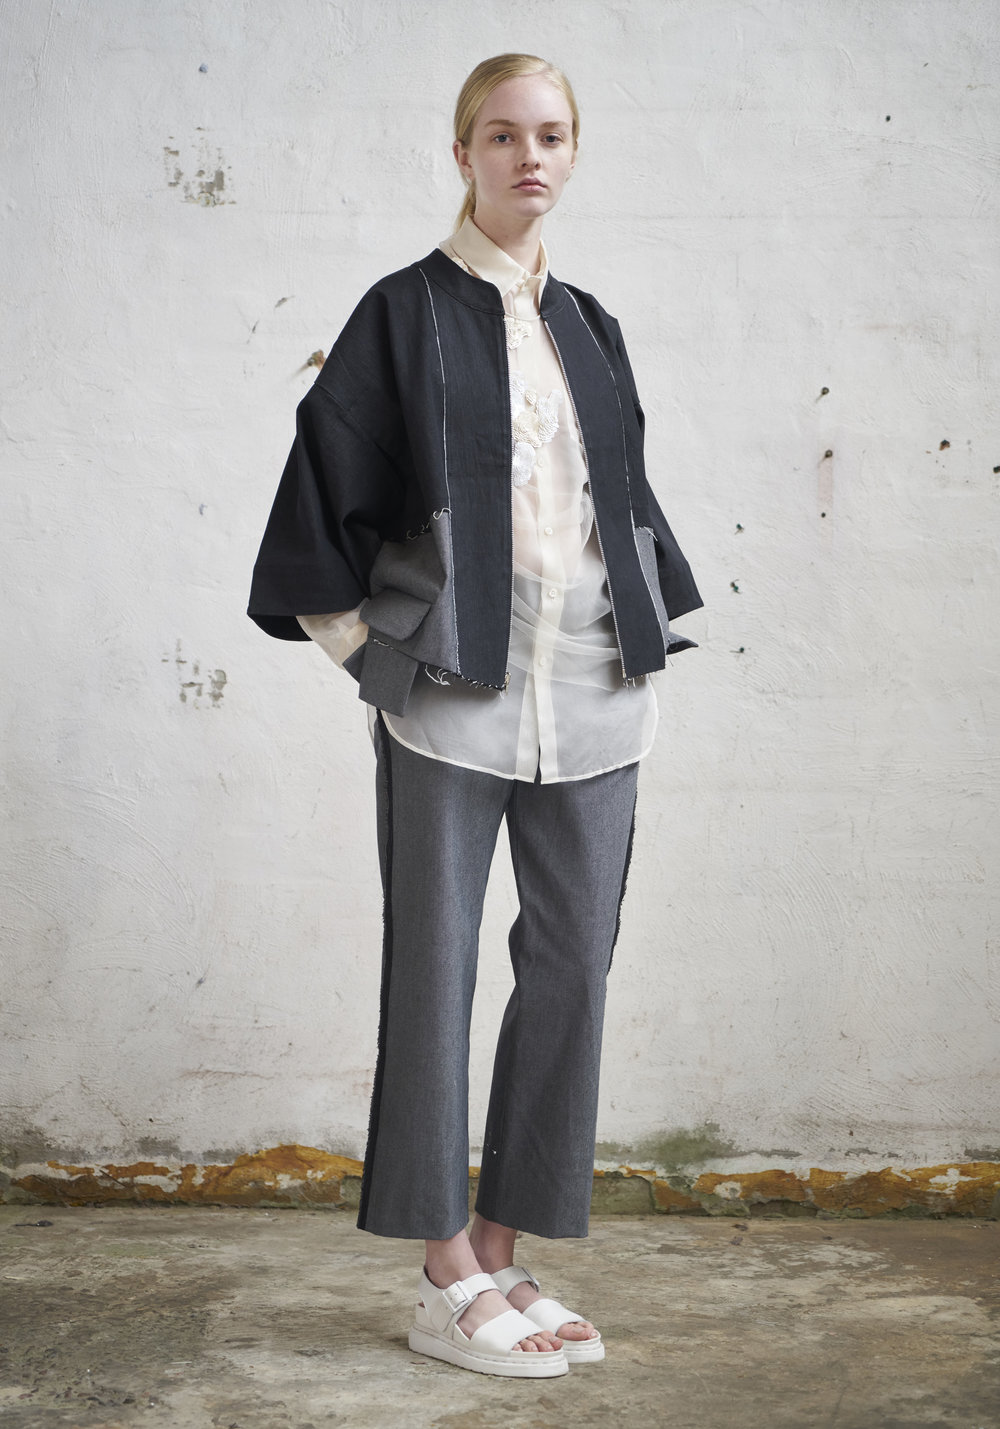 L O O K 1 9  901/S178232 Panelled Zip Jacket W/Kimono Sleeves  901/S176163 Cropped Pants  105/S174080S Organza Collared Shirt  151/S173446 Embellished Long Sleeve Top